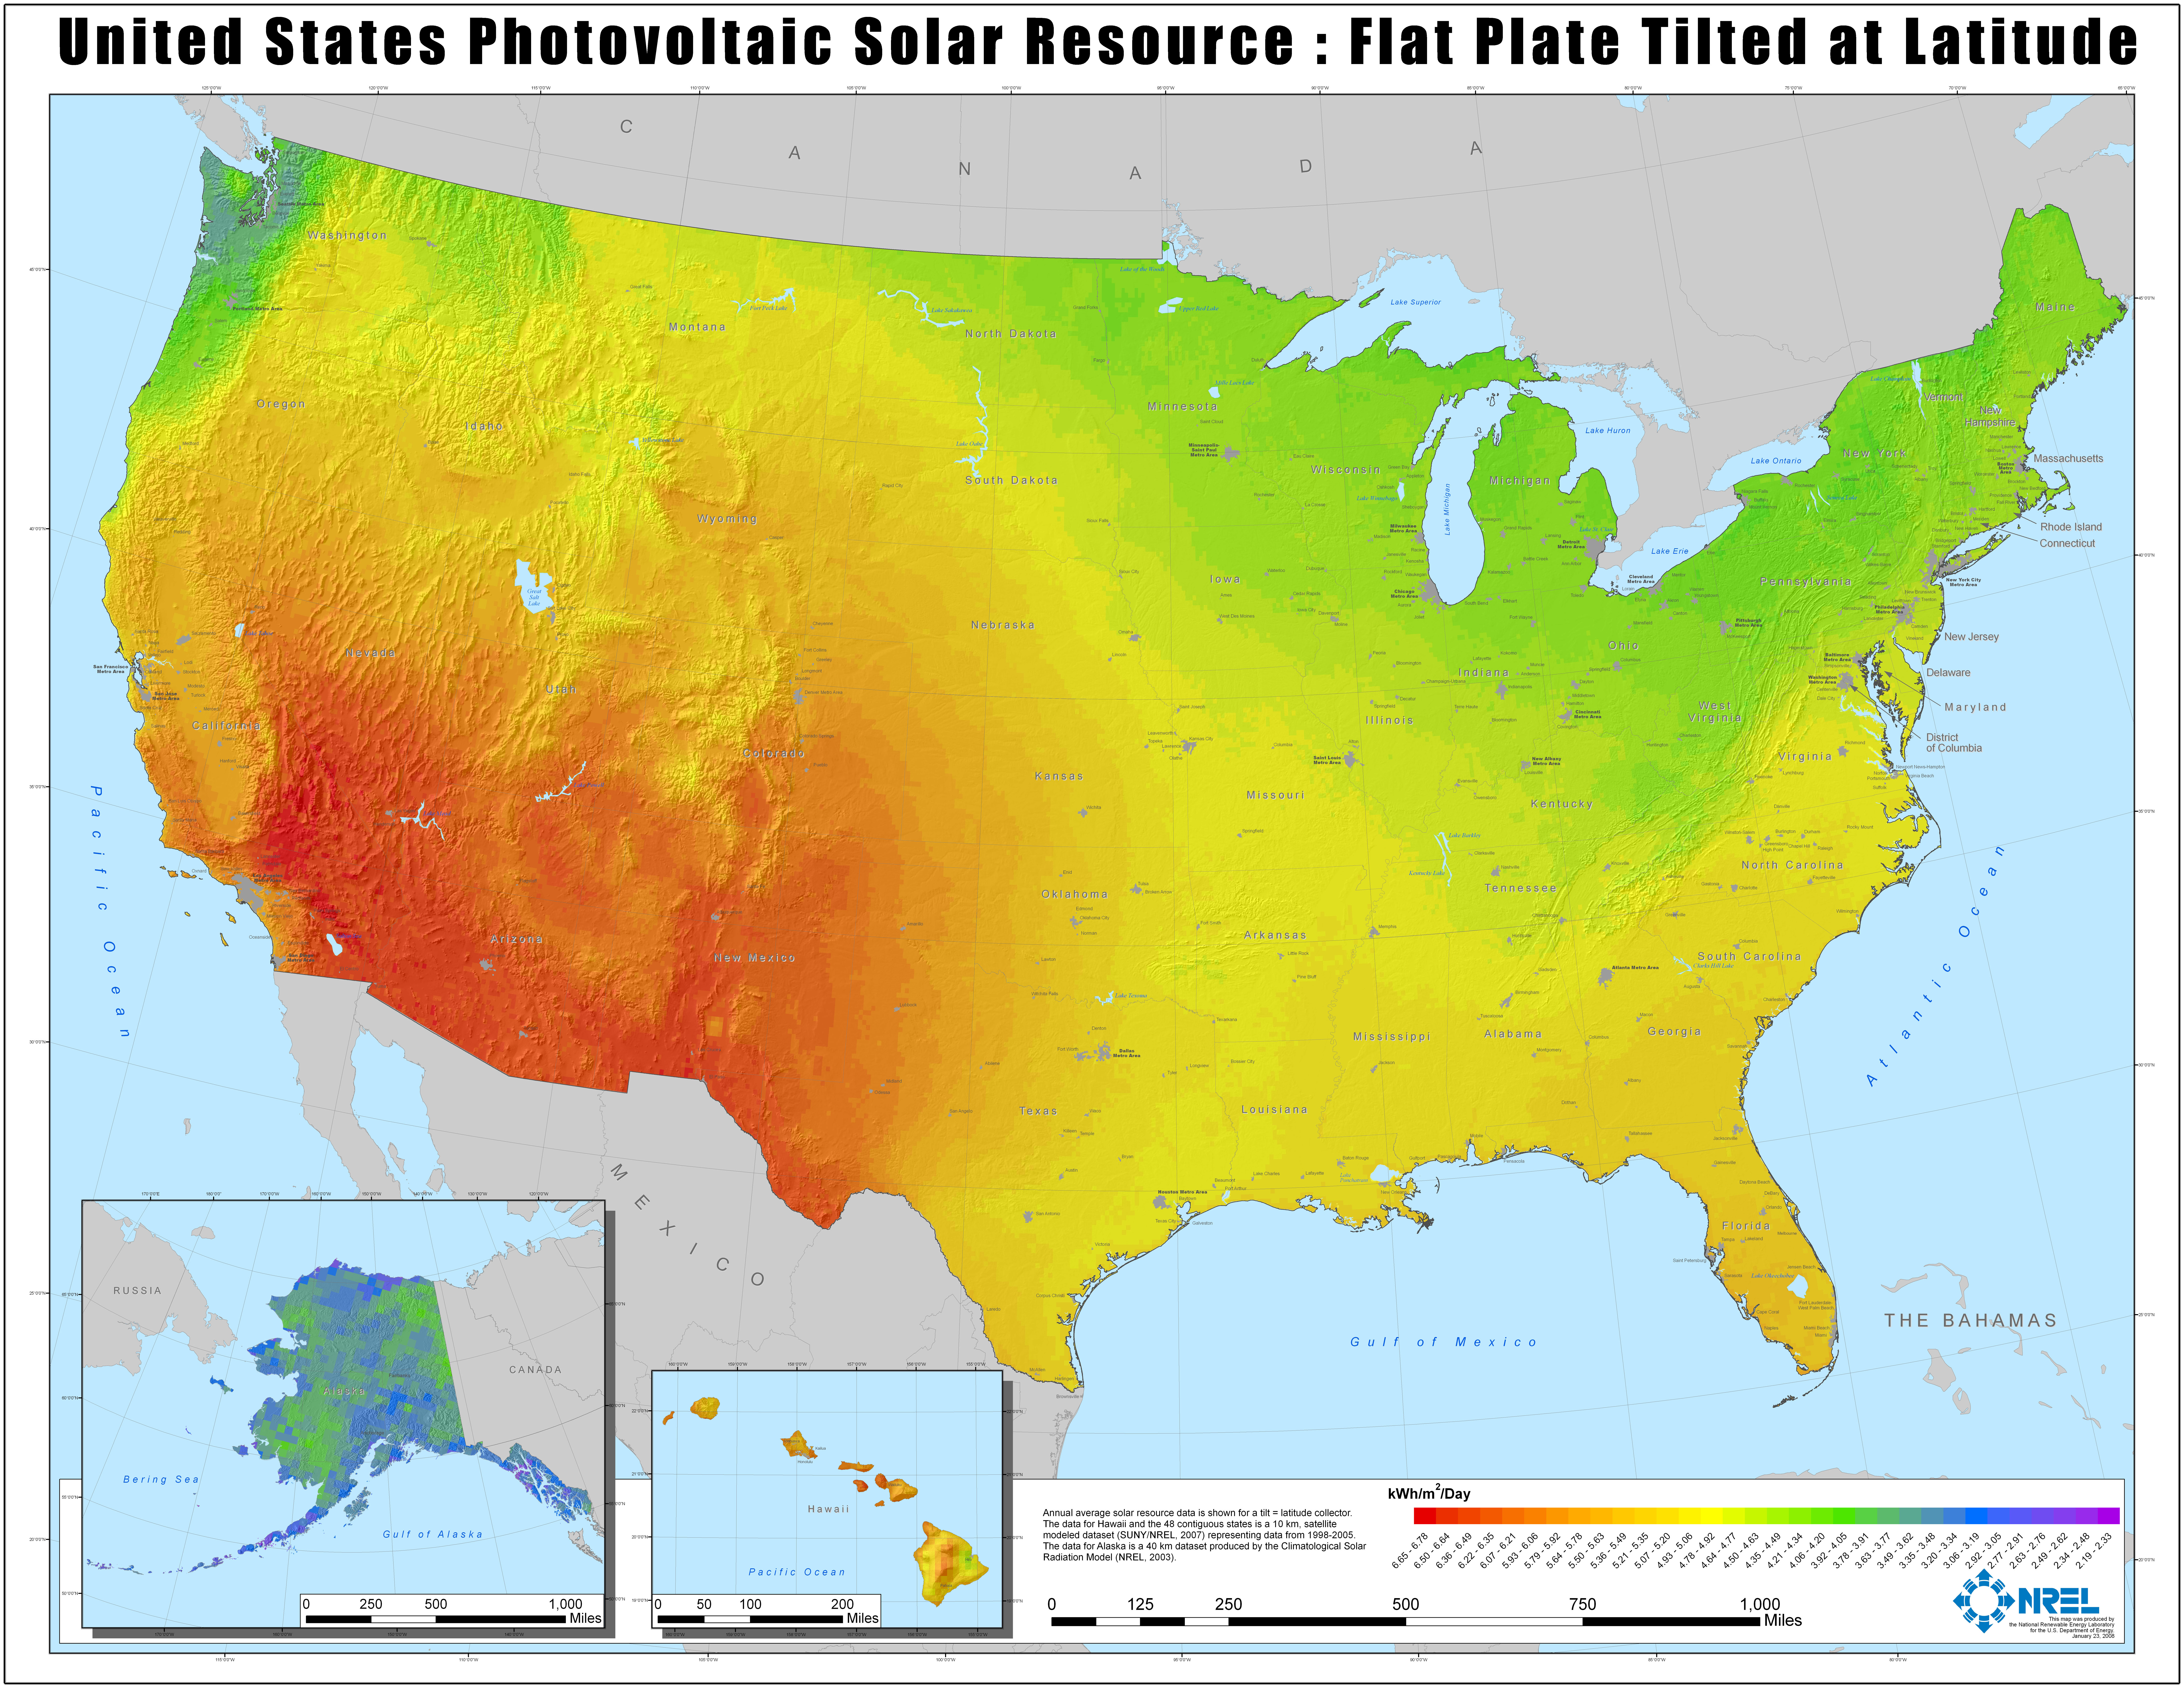 FileNREL USA PV Map Hires Jpg Wikimedia Commons - Radiation map in us